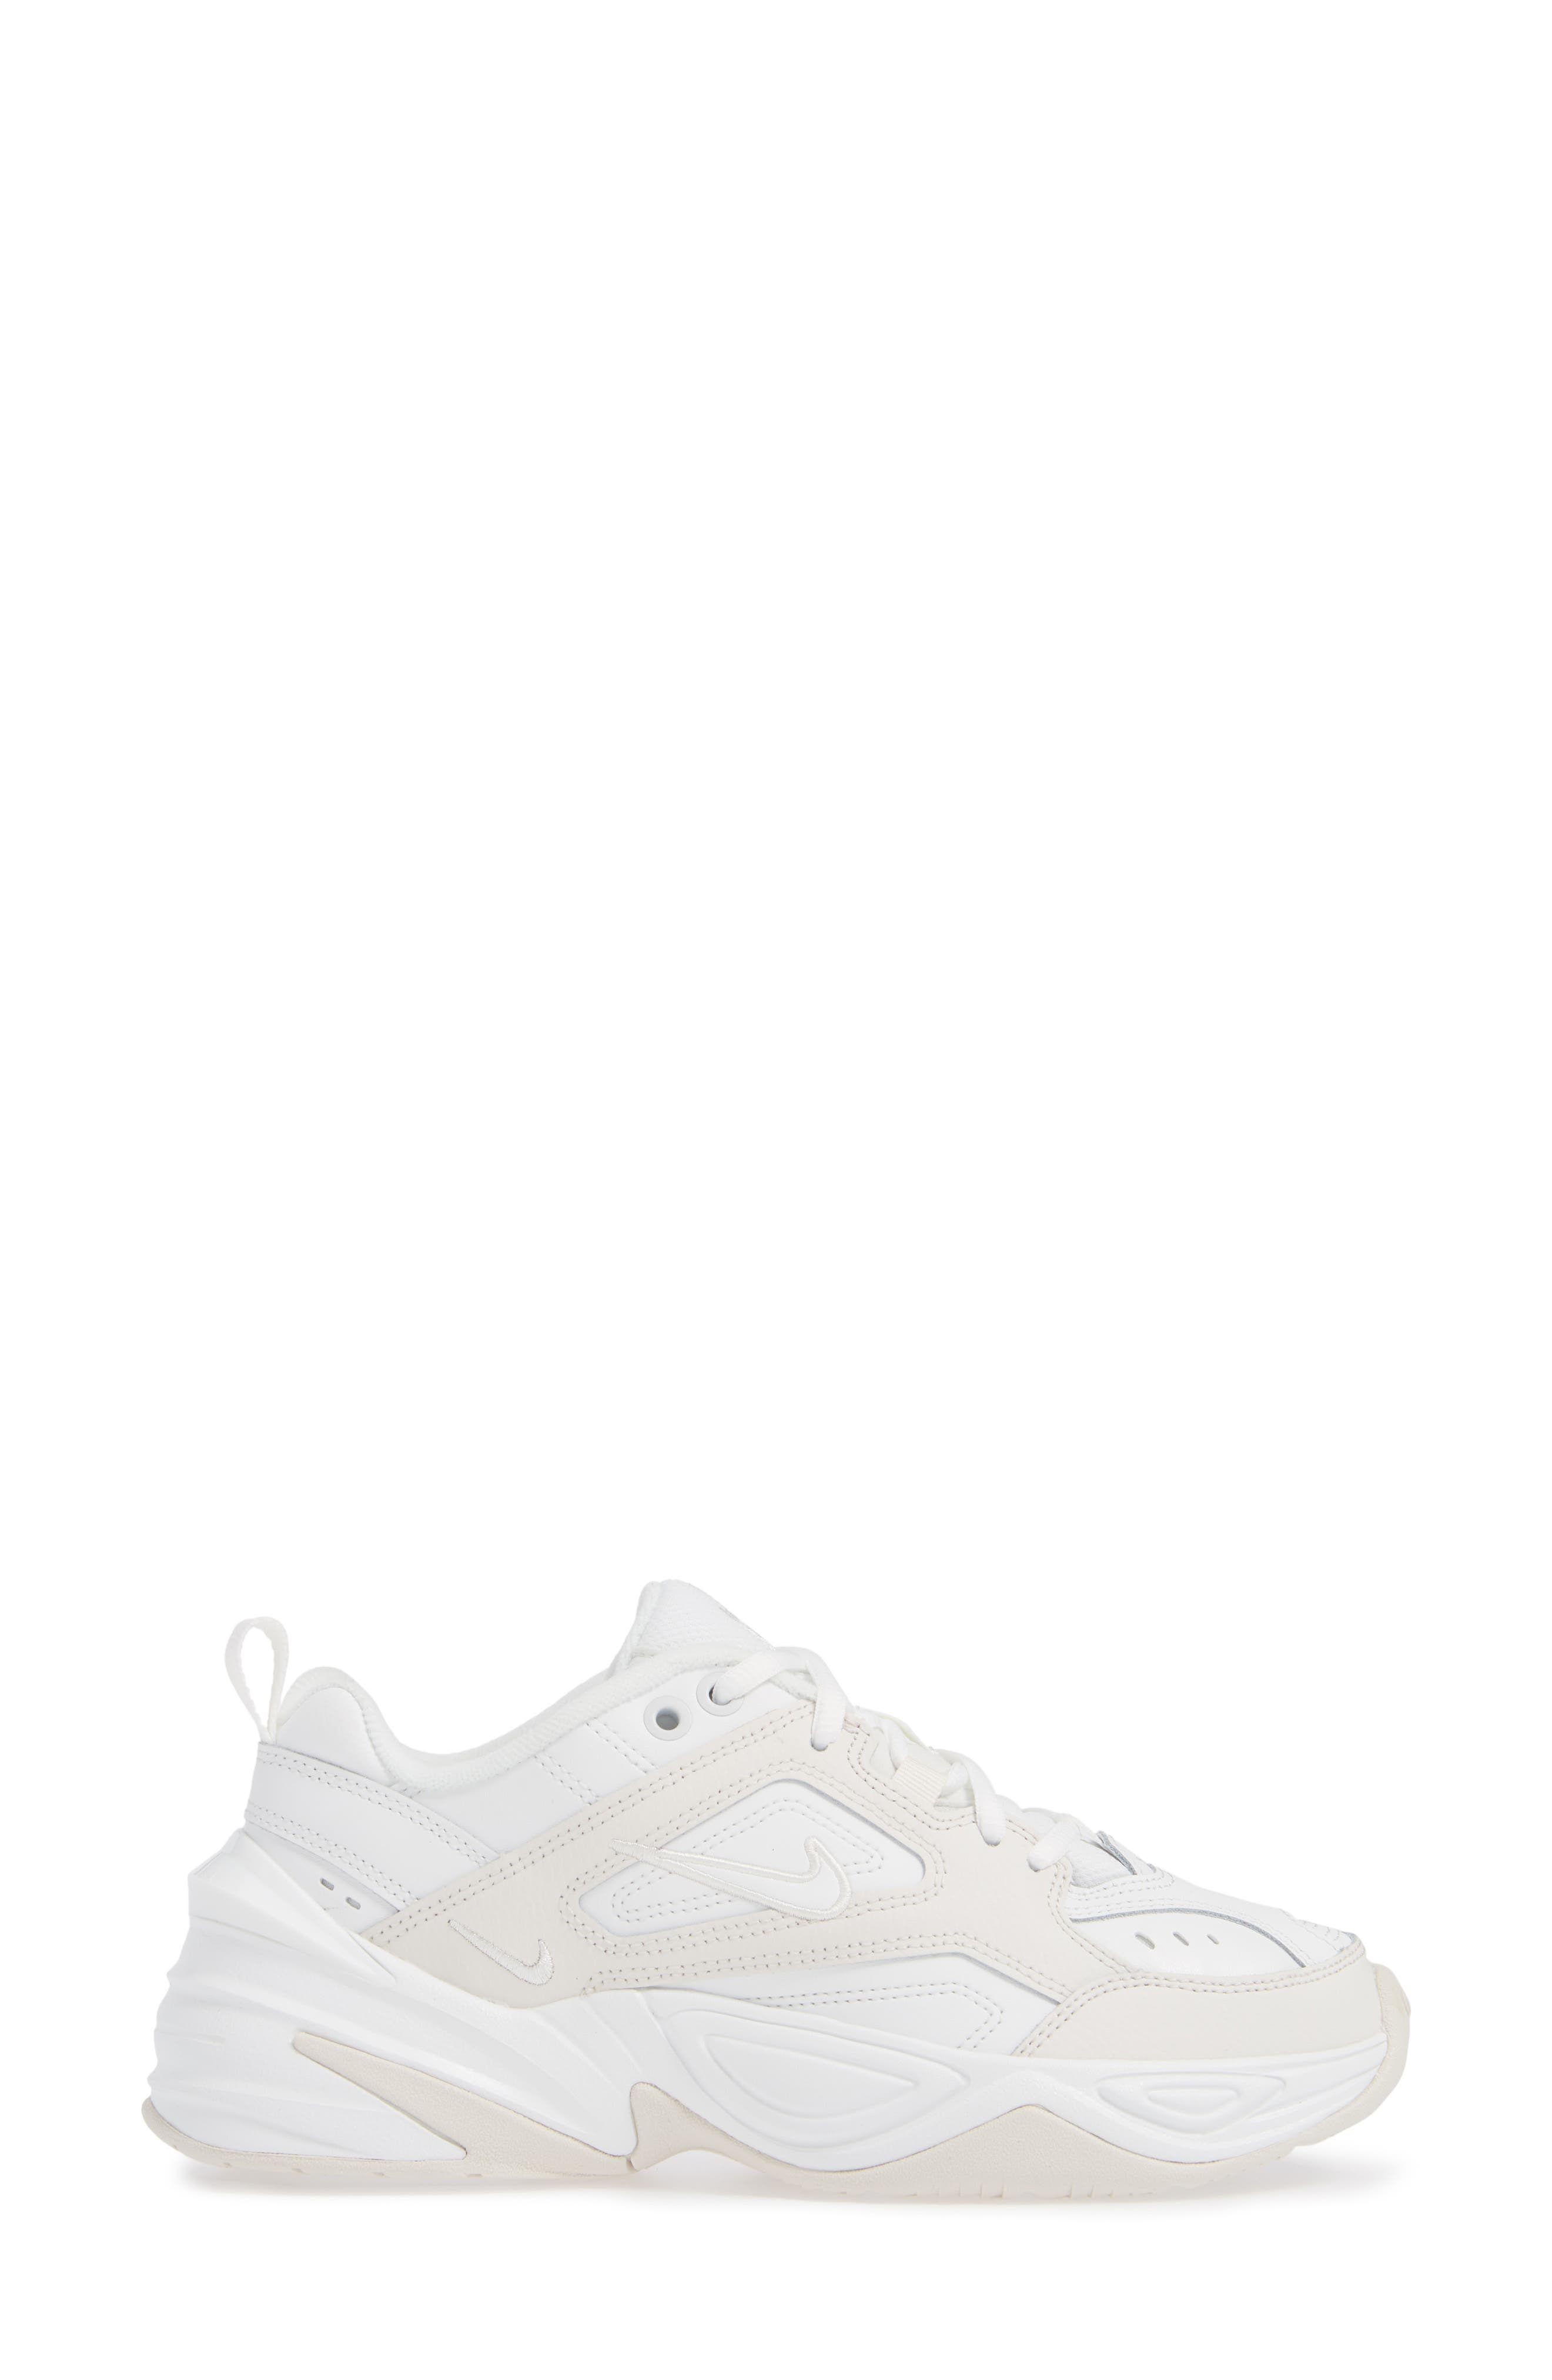 M2K Tekno Sneaker,                             Alternate thumbnail 3, color,                             WHITE